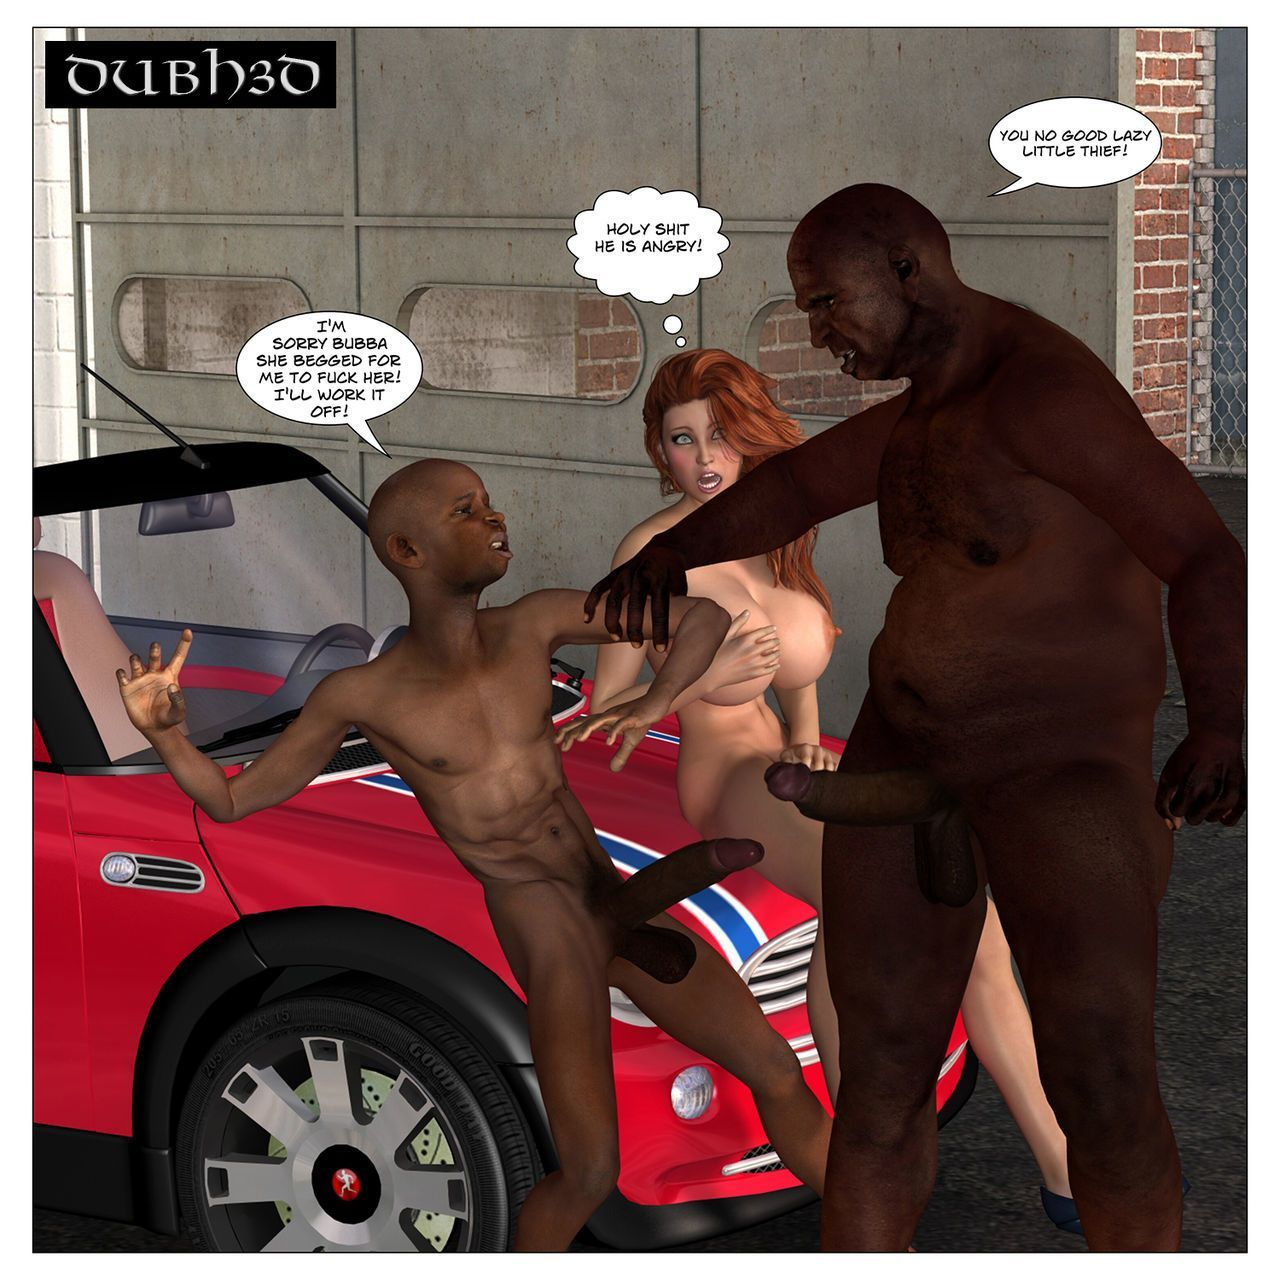 Dubh3d 3d porn RED: CAR TROUBLE Chapter 2 - The Pickup - part 2